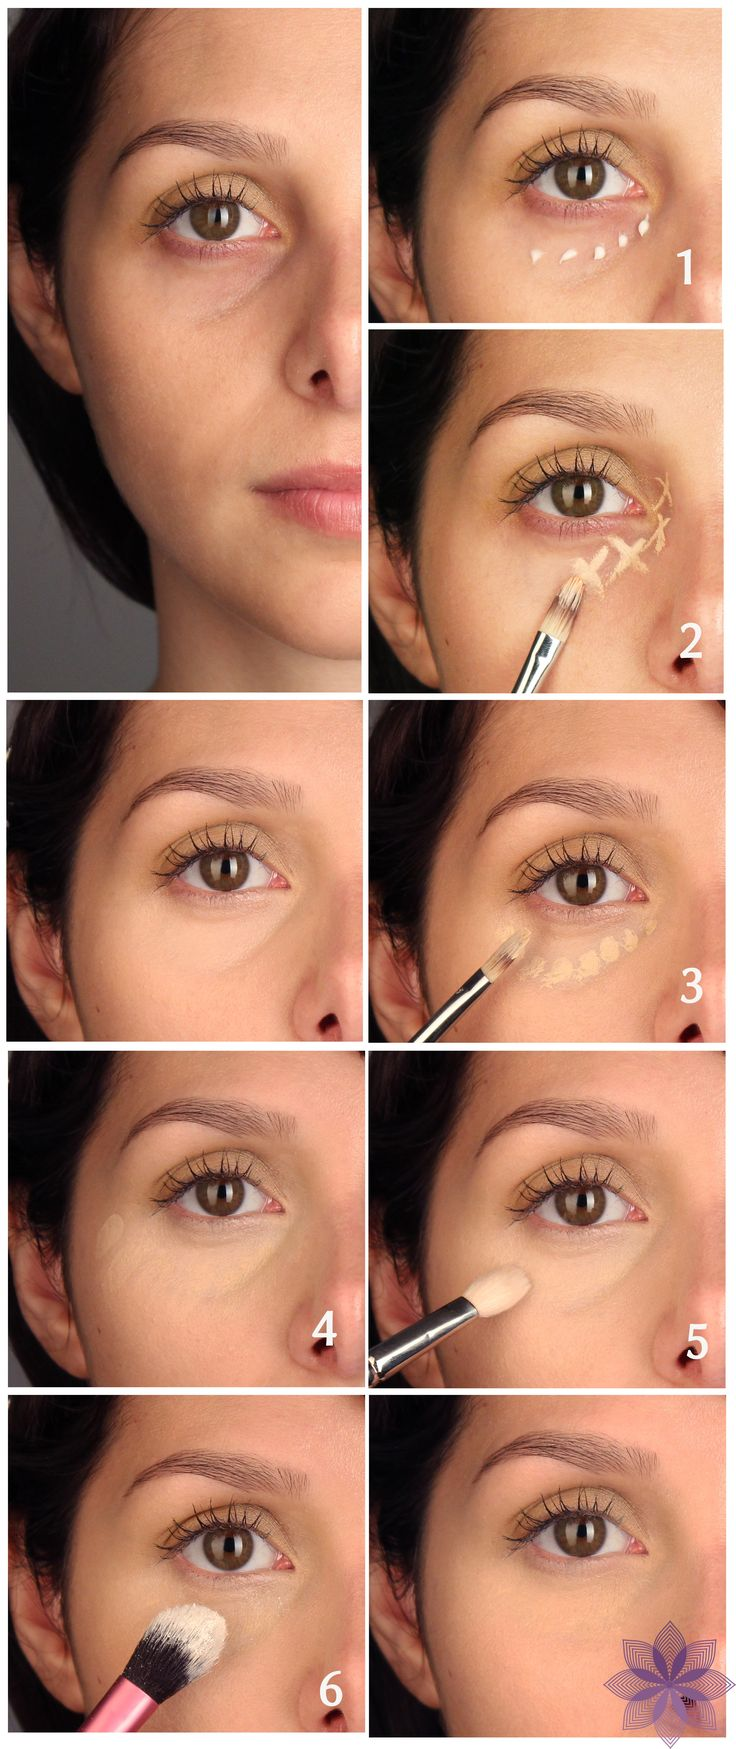 How to get rid of dark circles Tutorial by Blend Store & Studio